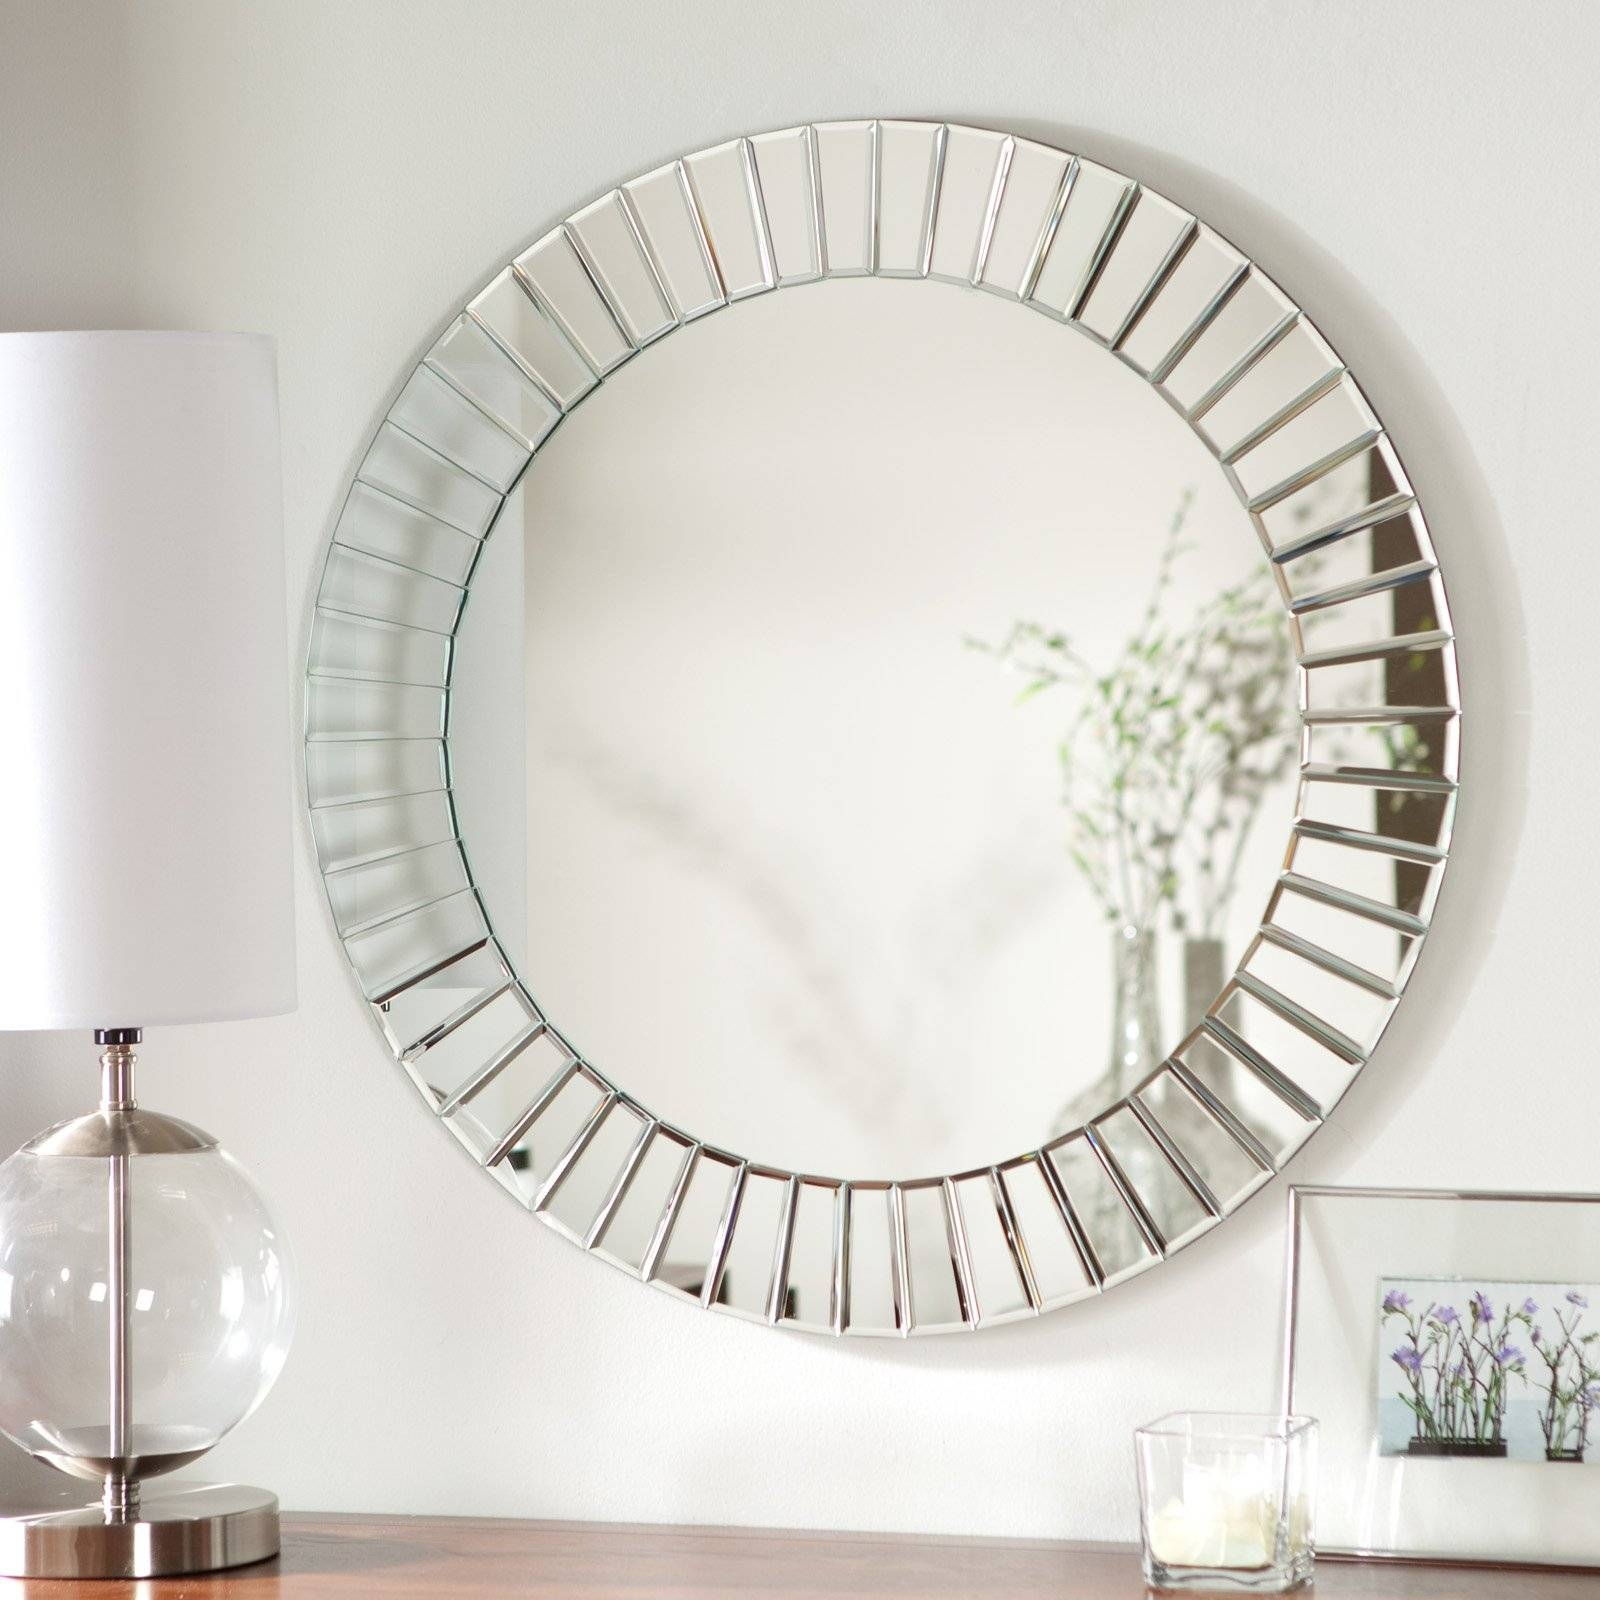 Decor Wall Mirrors throughout Fancy Wall Mirrors (Image 4 of 25)